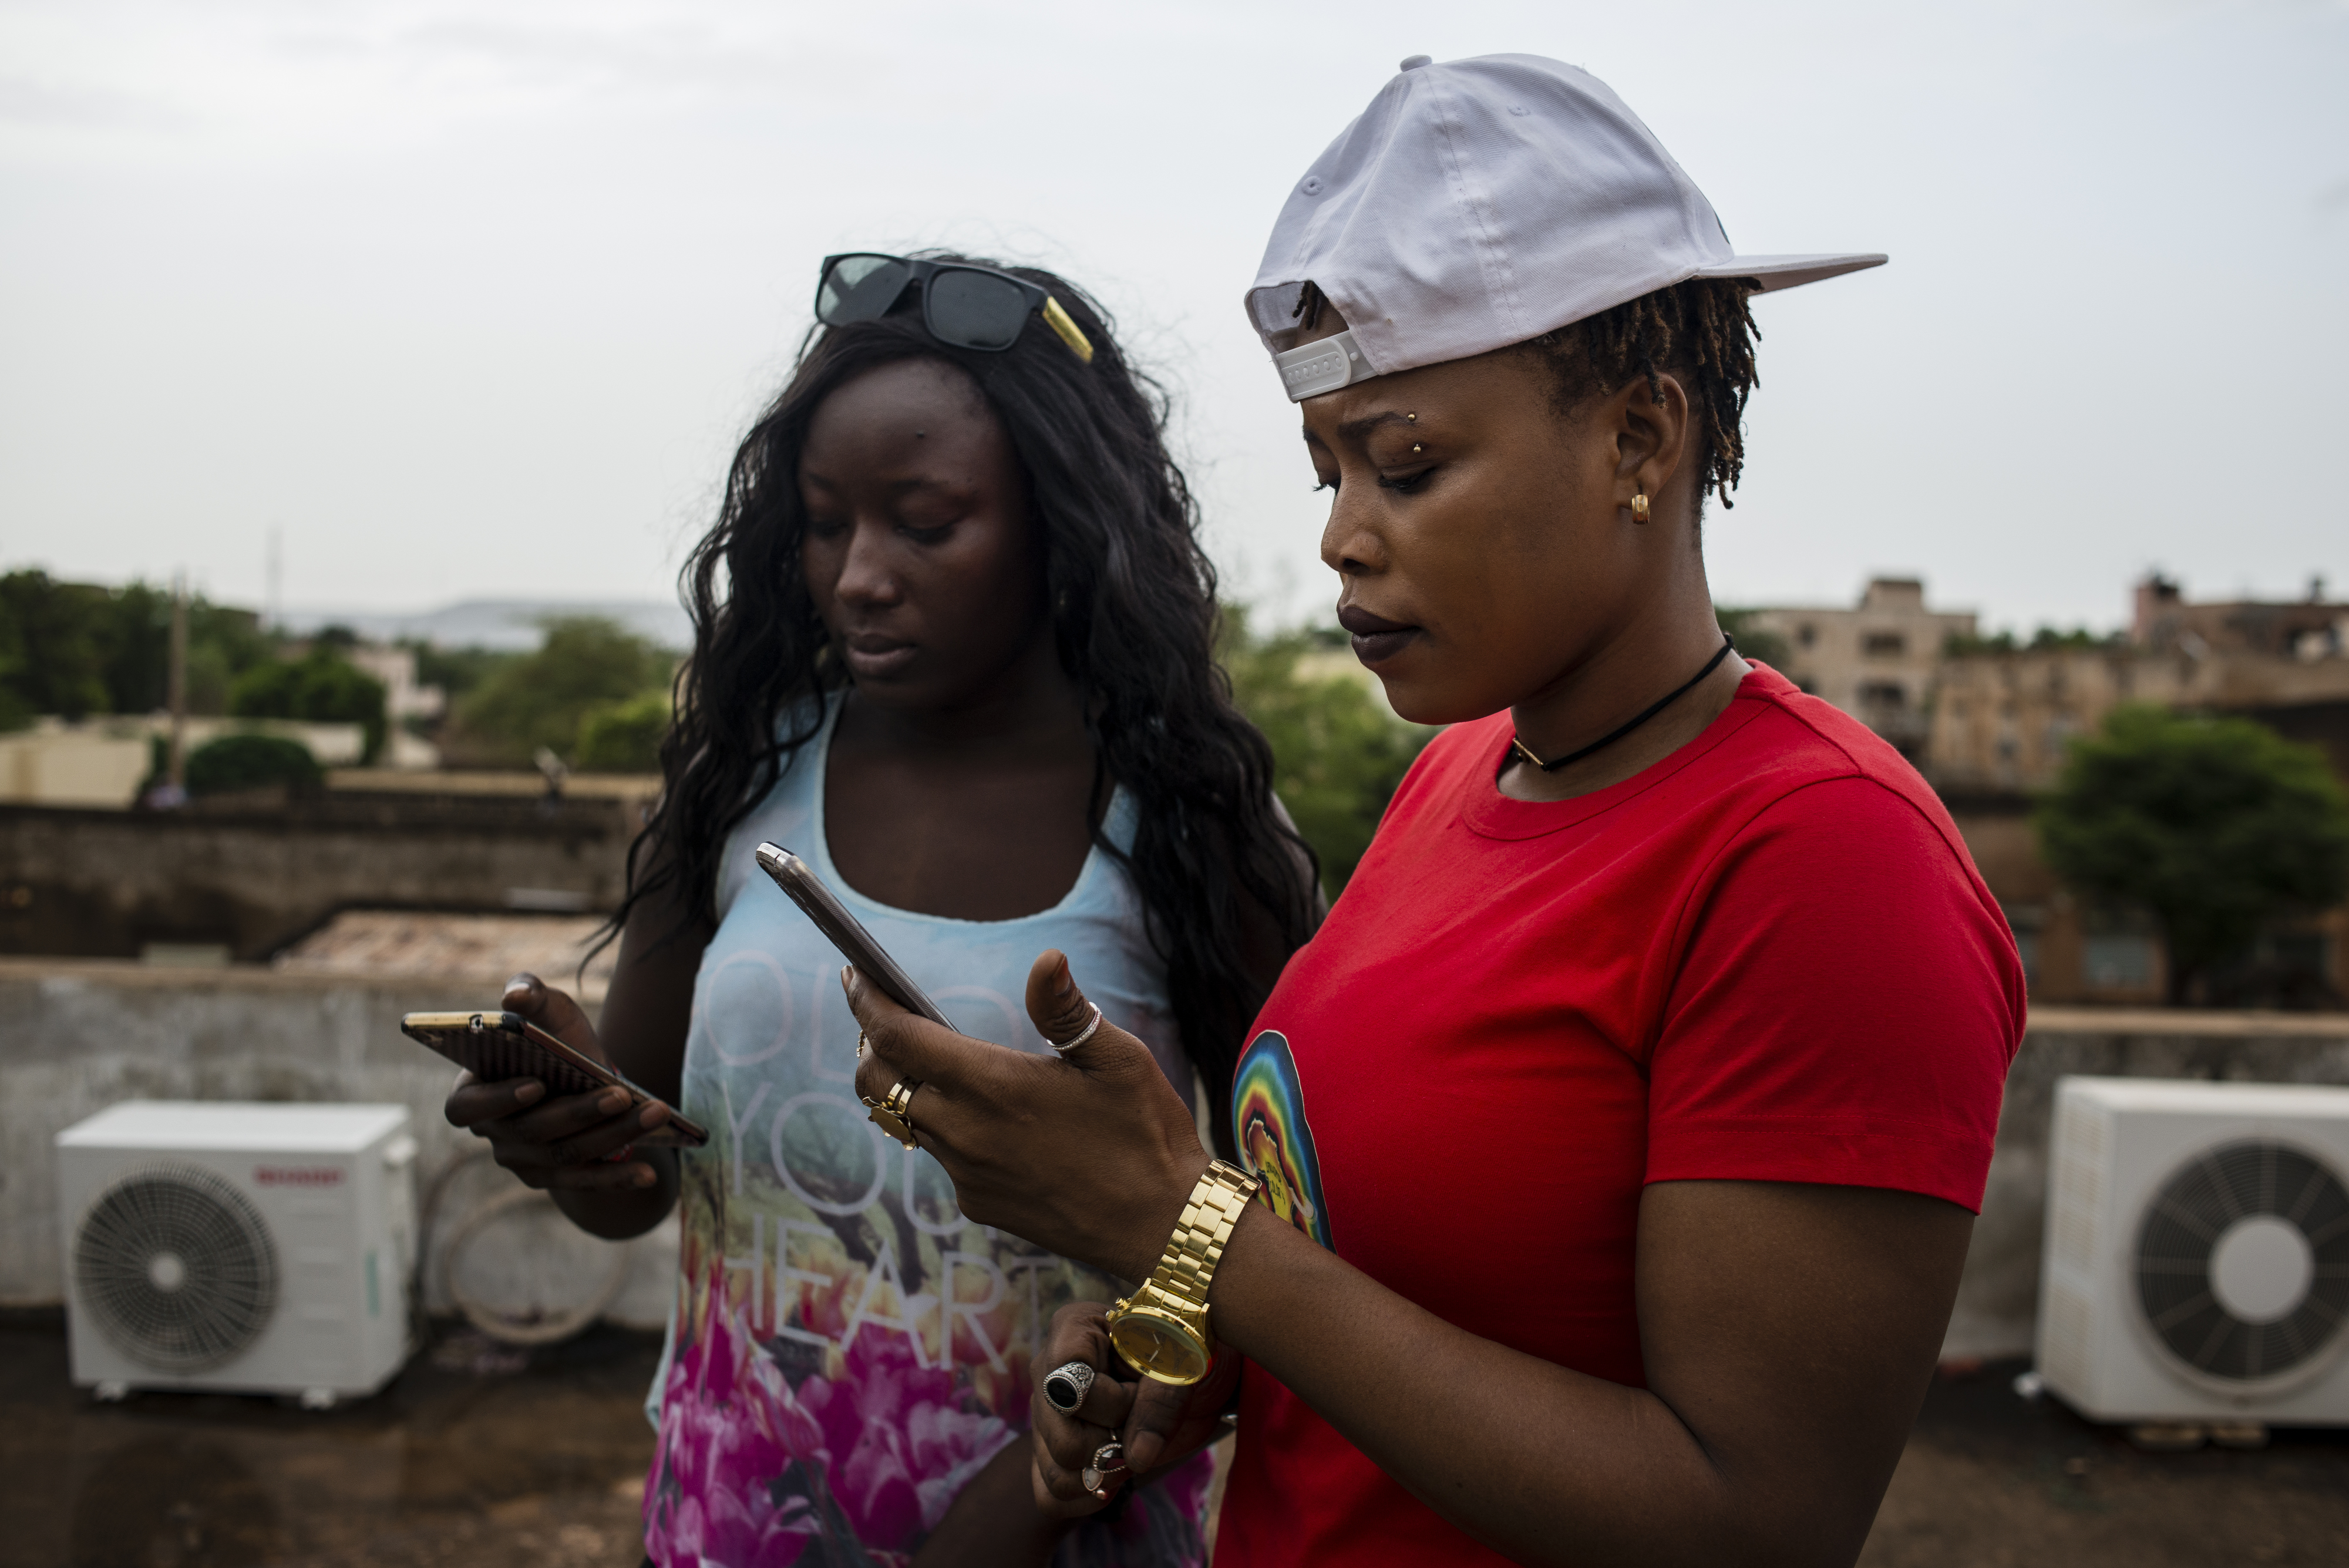 Ami and her friend, also a musician, check their phones after uploading to Instagram on May 22, 2017 in Bamako, Mali.